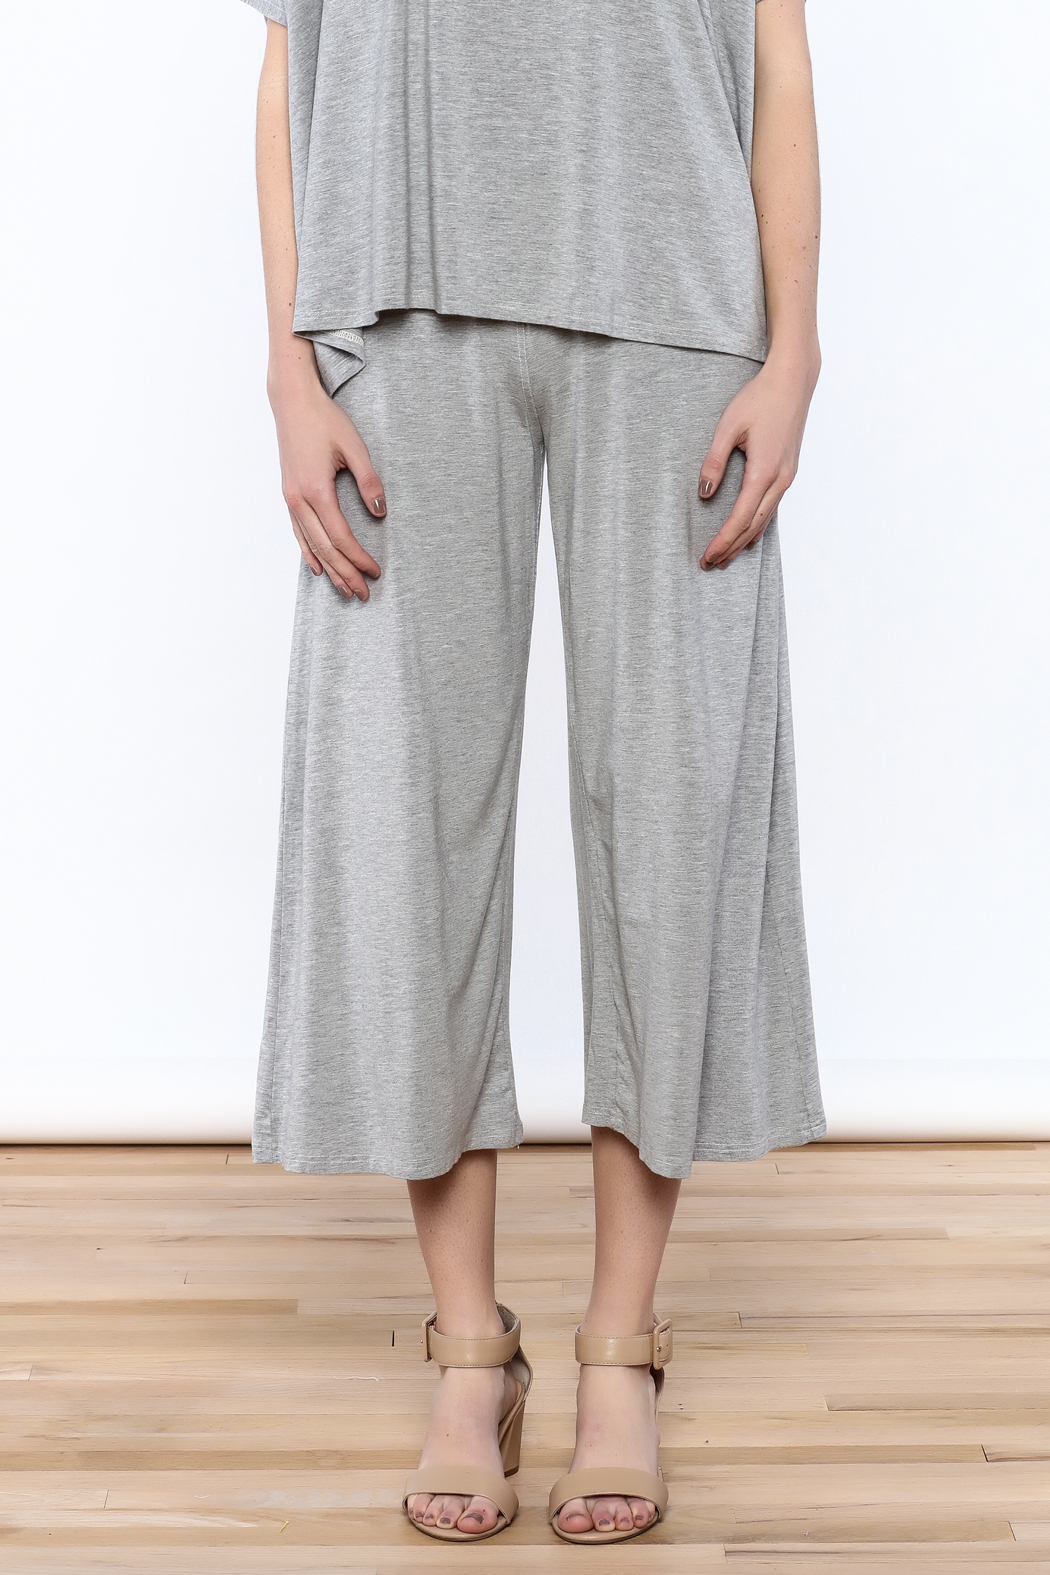 Heartstring Grey Banded Crop Pant - Side Cropped Image